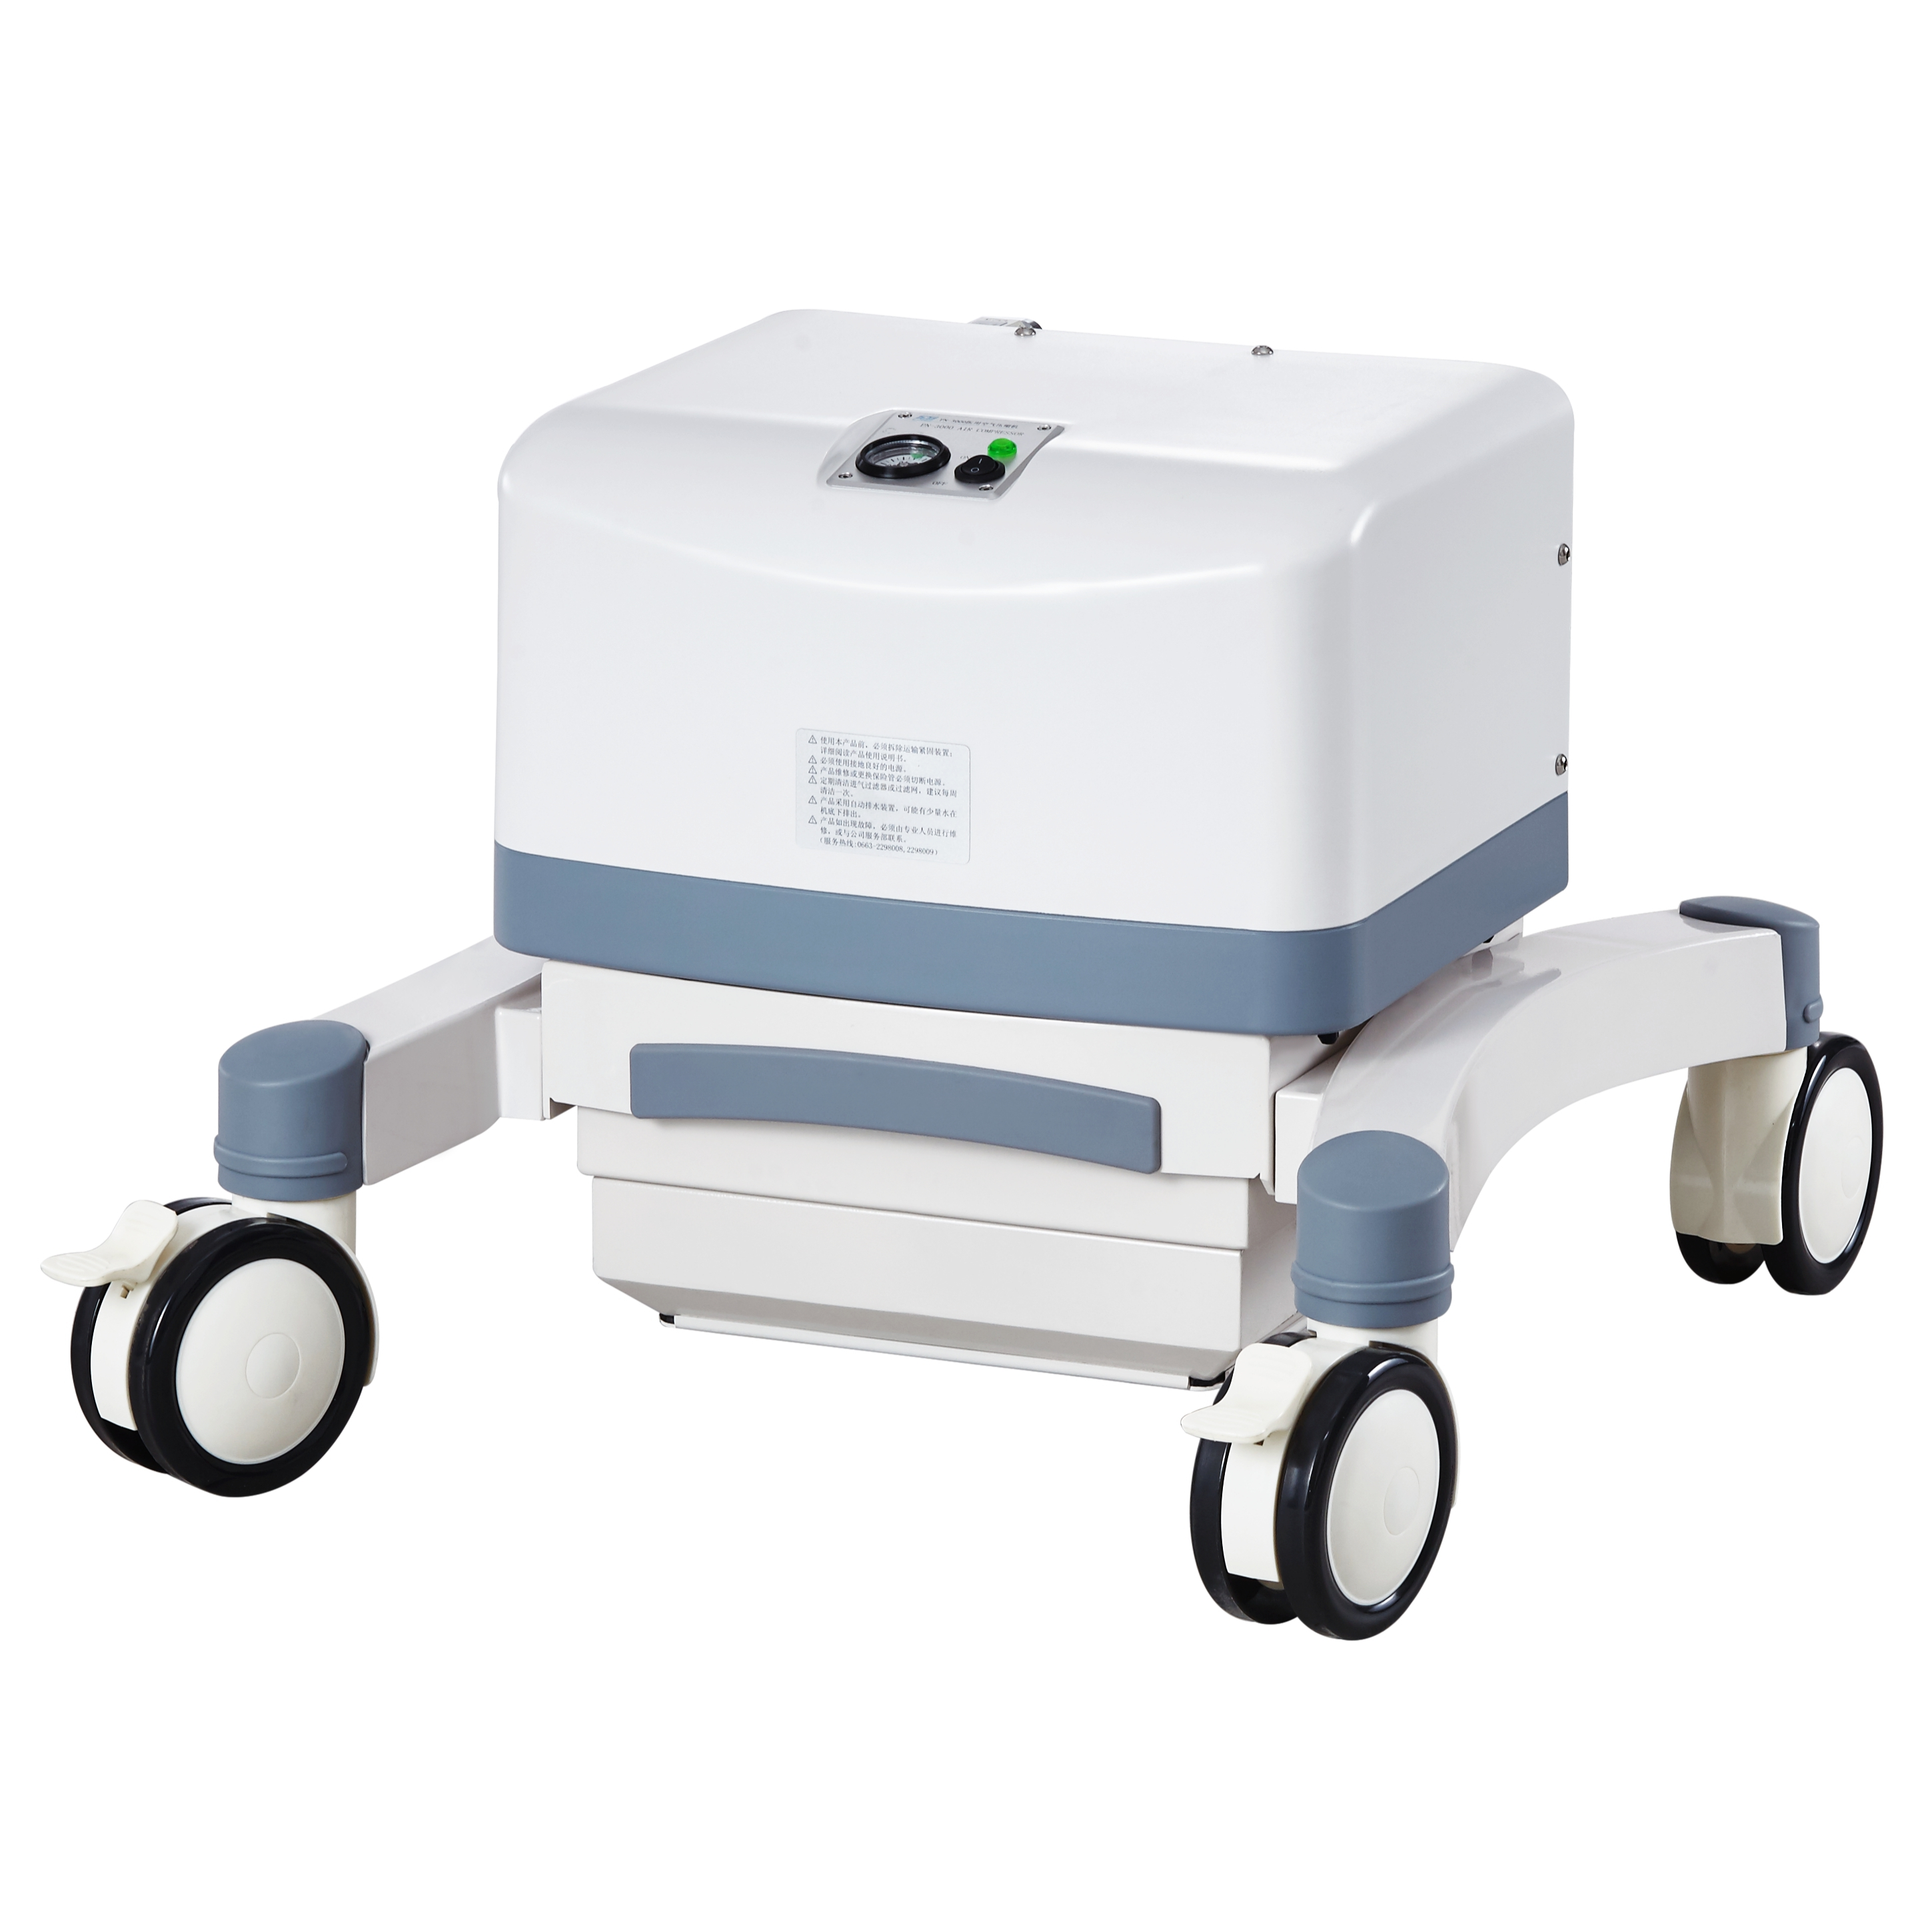 CE ISO Approved Reliable Medical Air Compressor with High pressure High Flow for ventilators - KingCare | KingCare.net